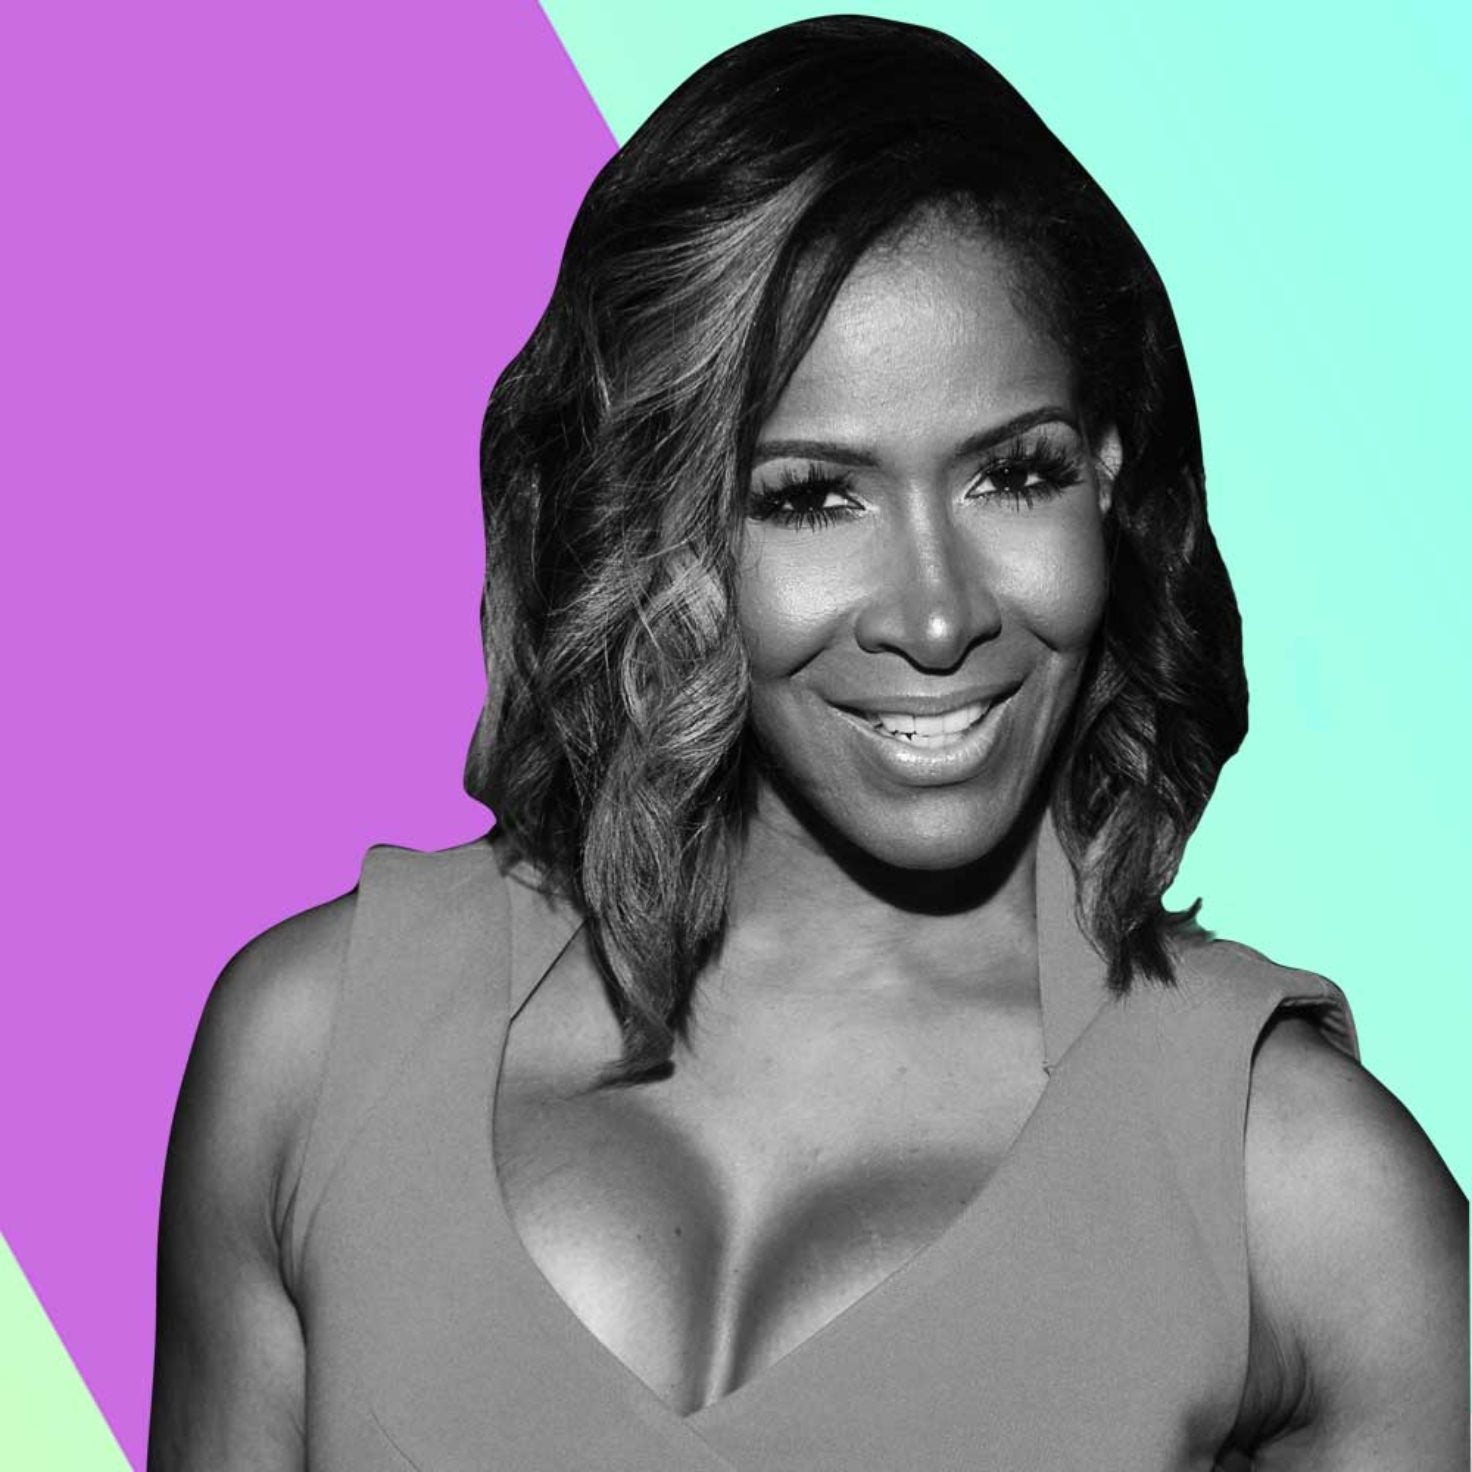 'RHOA' Star Sheree Whitfield On The Status Of Her Relationship With Incarcerated Boyfriend Tyrone: 'I'm Not Marrying Someone In Prison'